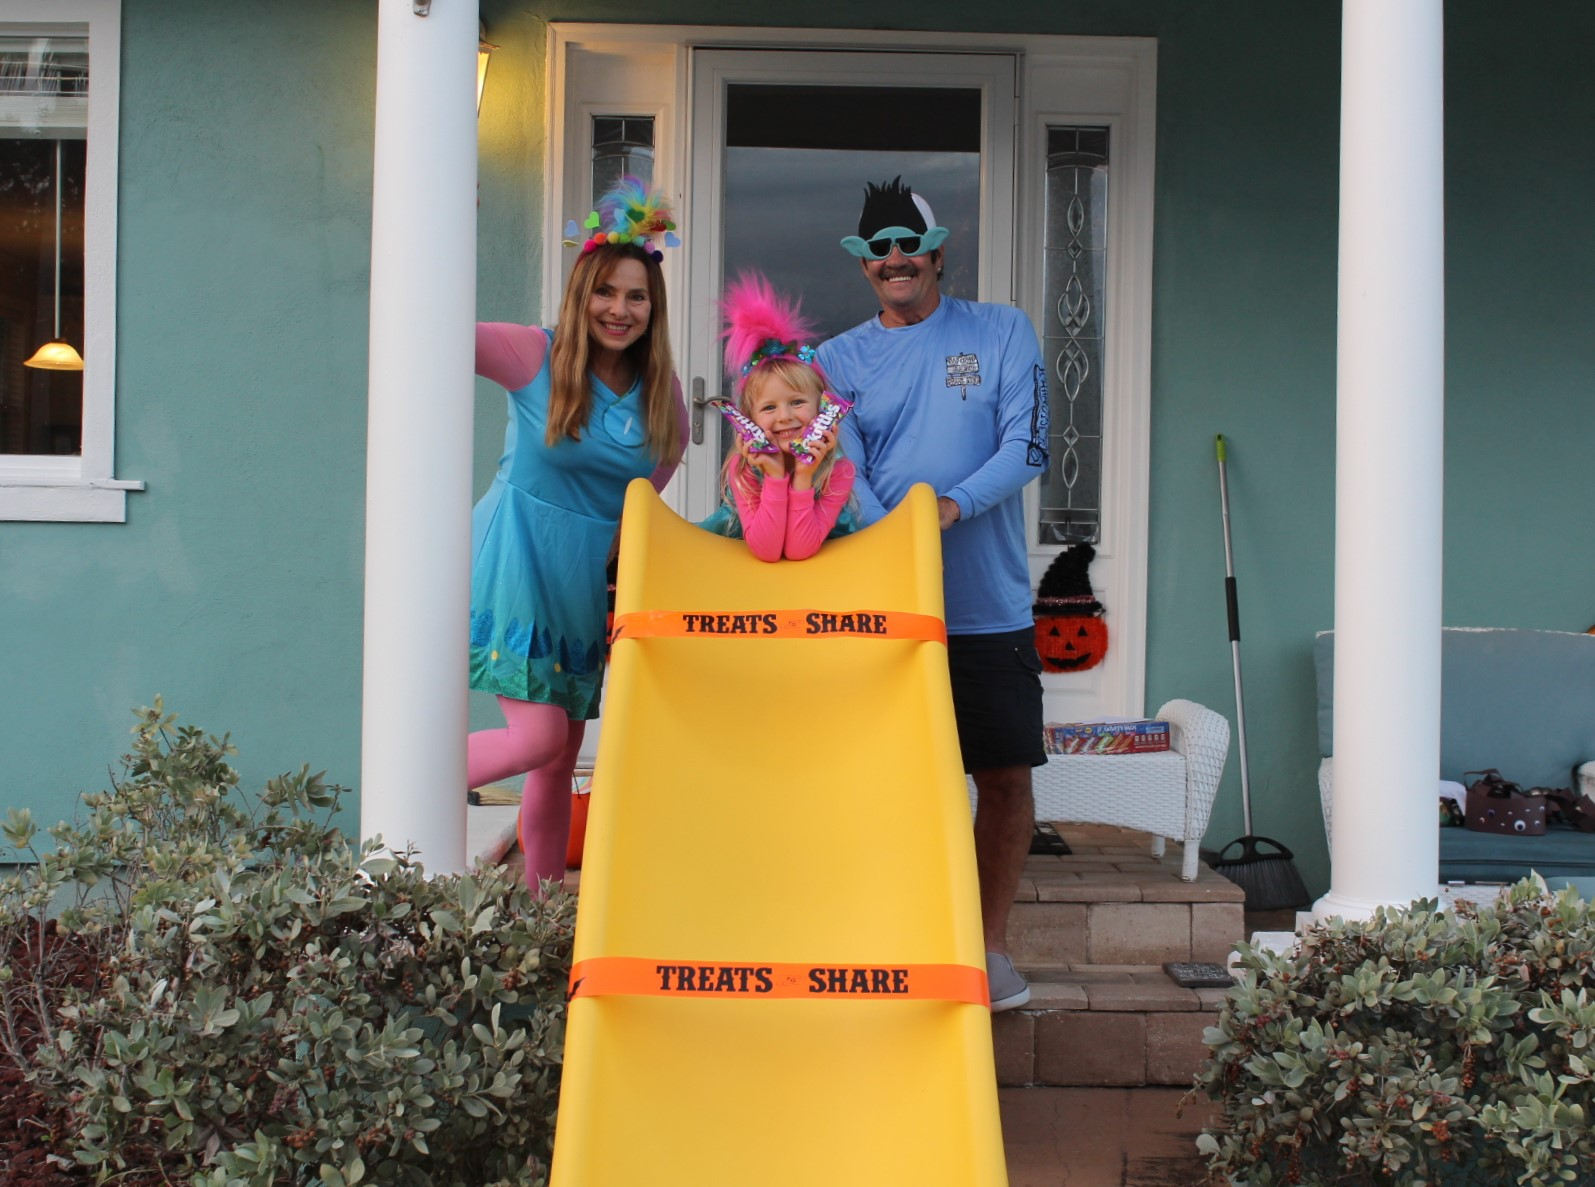 A man and woman with a child in front of a yellow slide on a front porch.